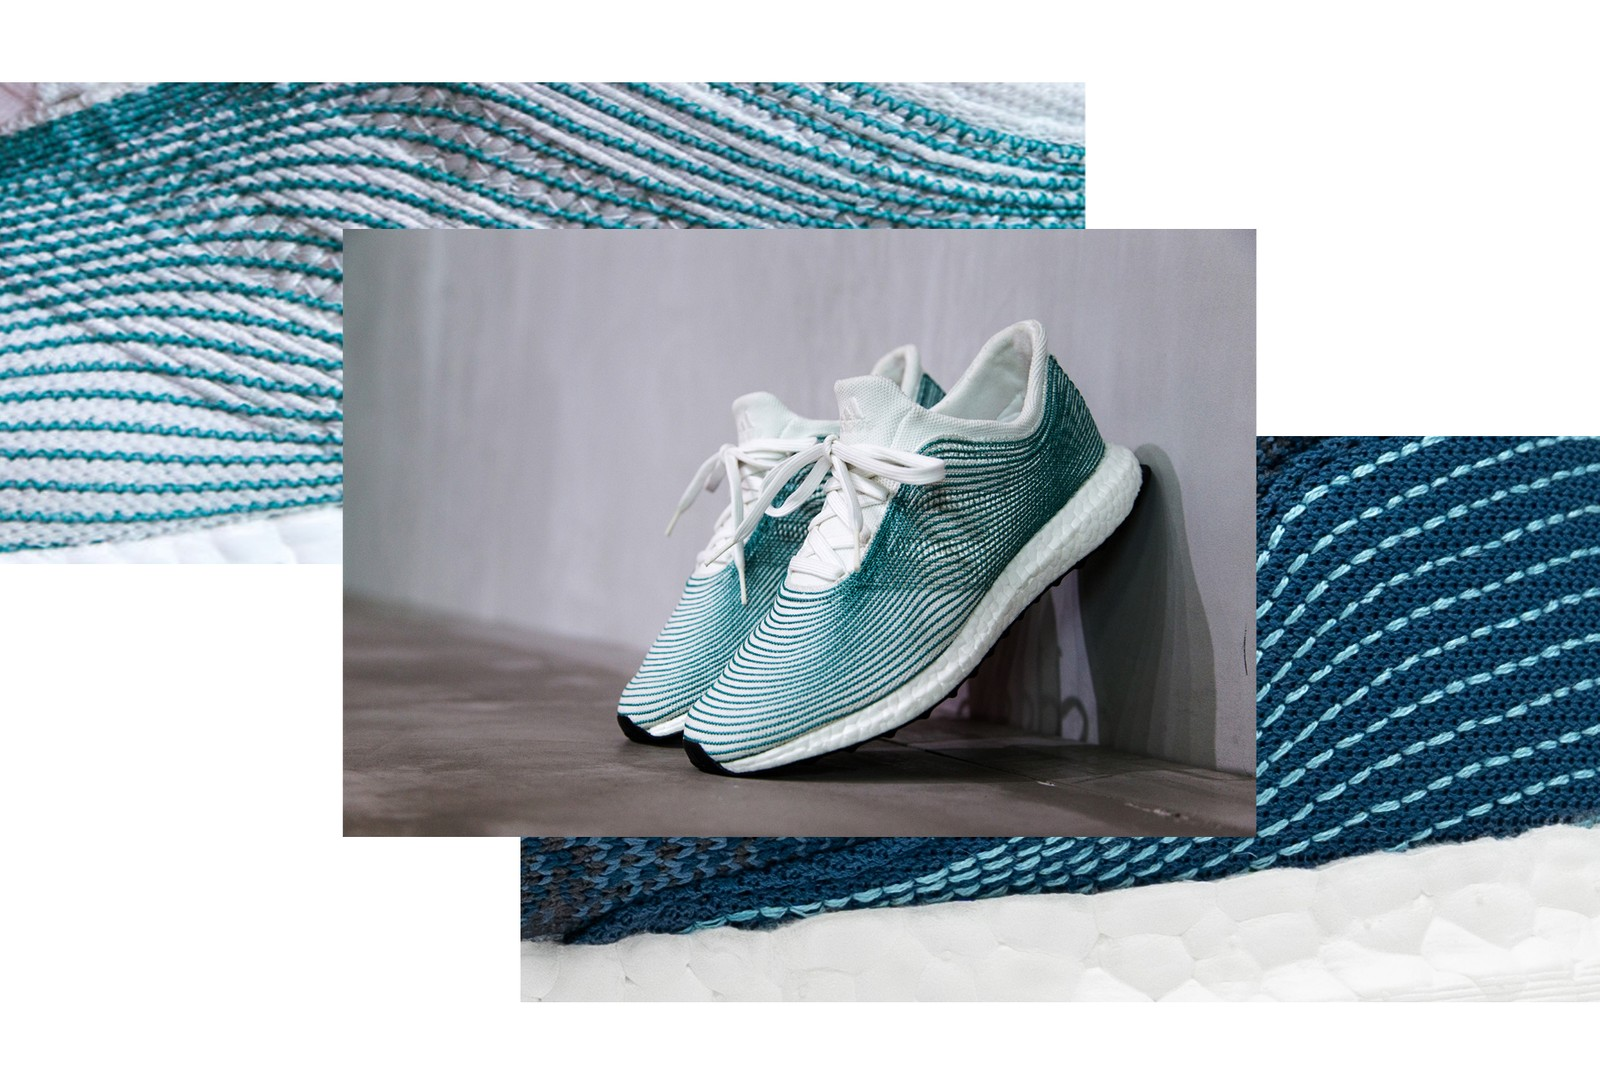 nike adidas jordan balenciaga flyknit racer ultraboost ultra boost roshe run kanye west yeezy 2 red october 350 turtle dove turtledove fragment design hiroshi fujiwara air 1 high og parley futurecraft 4d 3d foamposite one galaxy concord 11 mag off white virgil abloh the ten chicago triple s